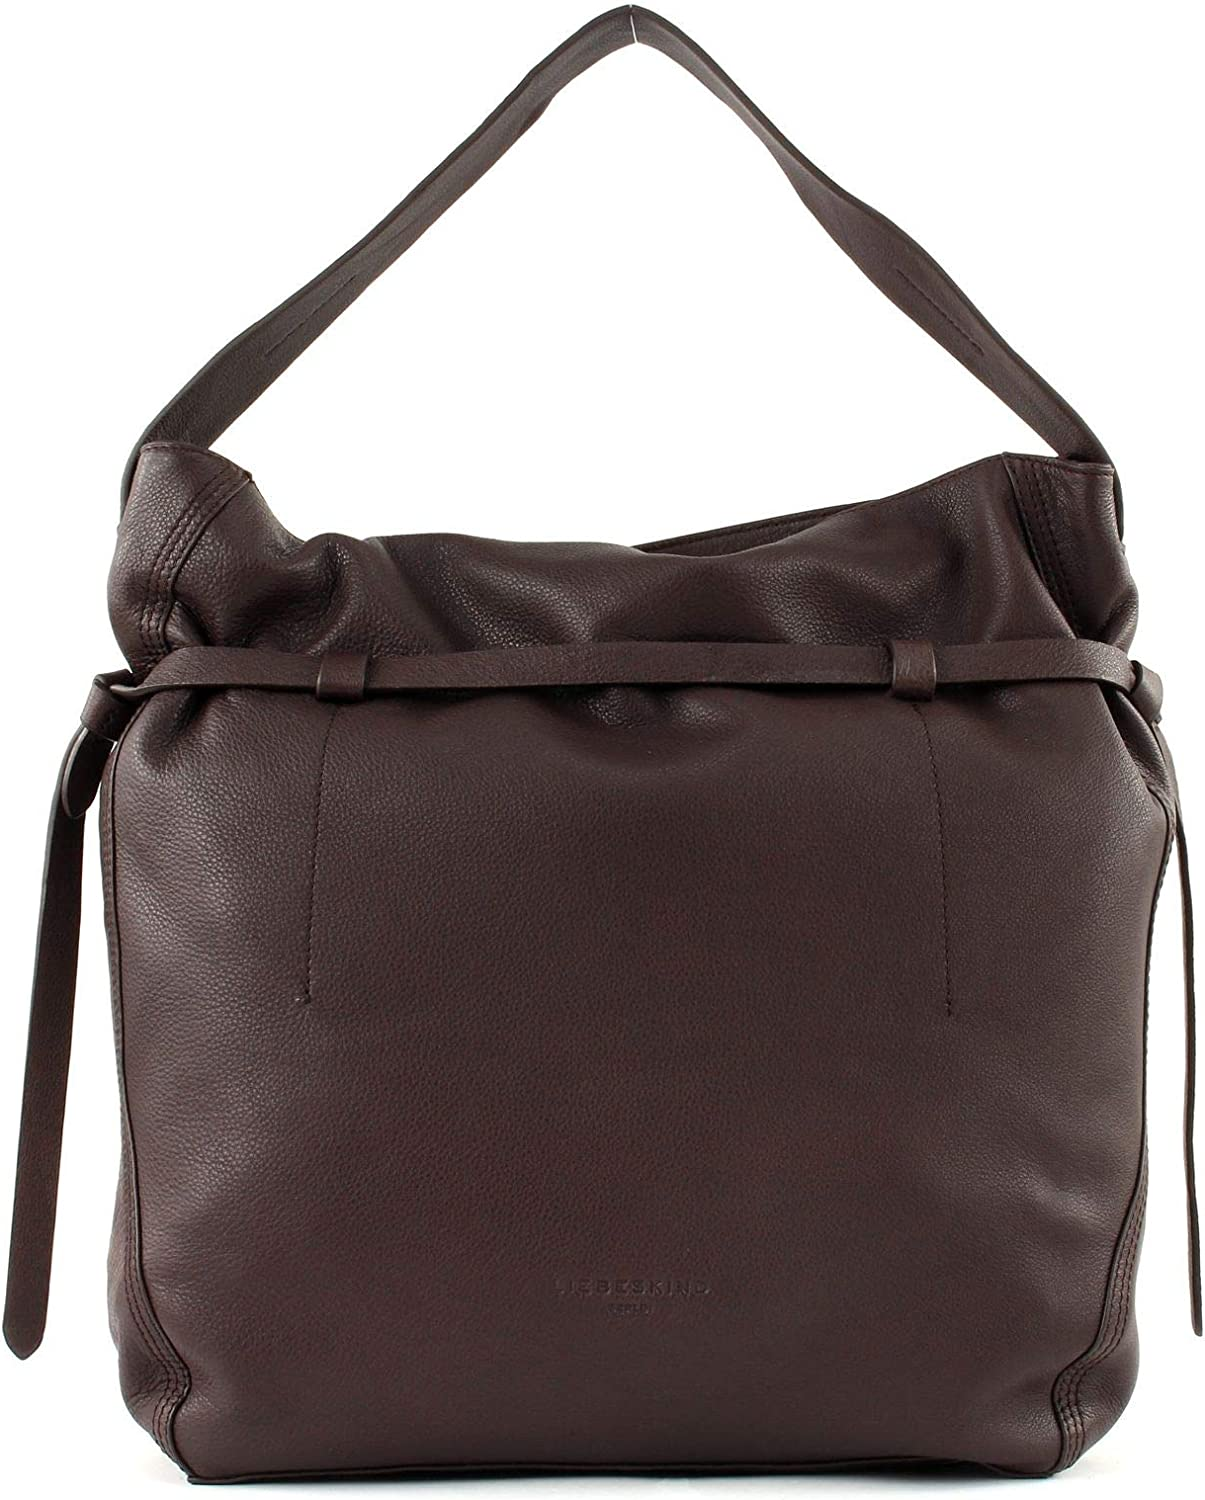 Liebeskind Berlin Lincoln Vinlux Bolsos totes Mujer